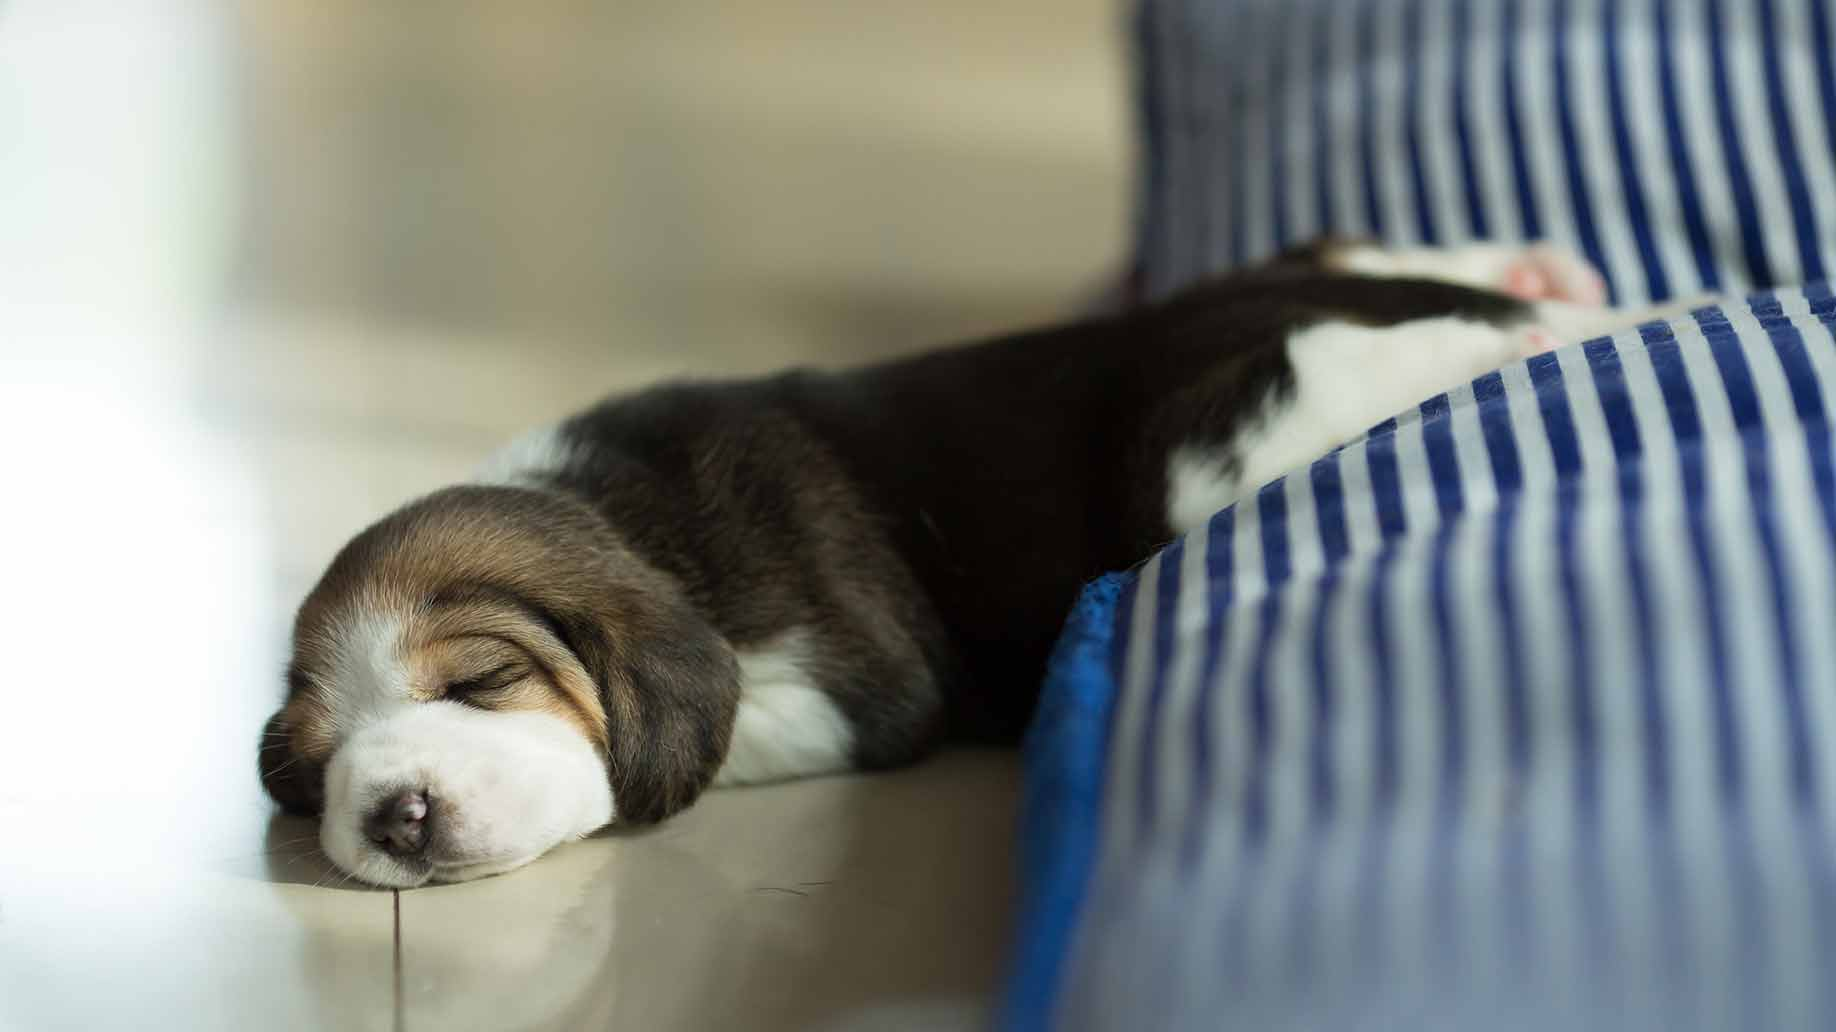 proper sleeping positions sleeping puppy headaches migraines natural remedies